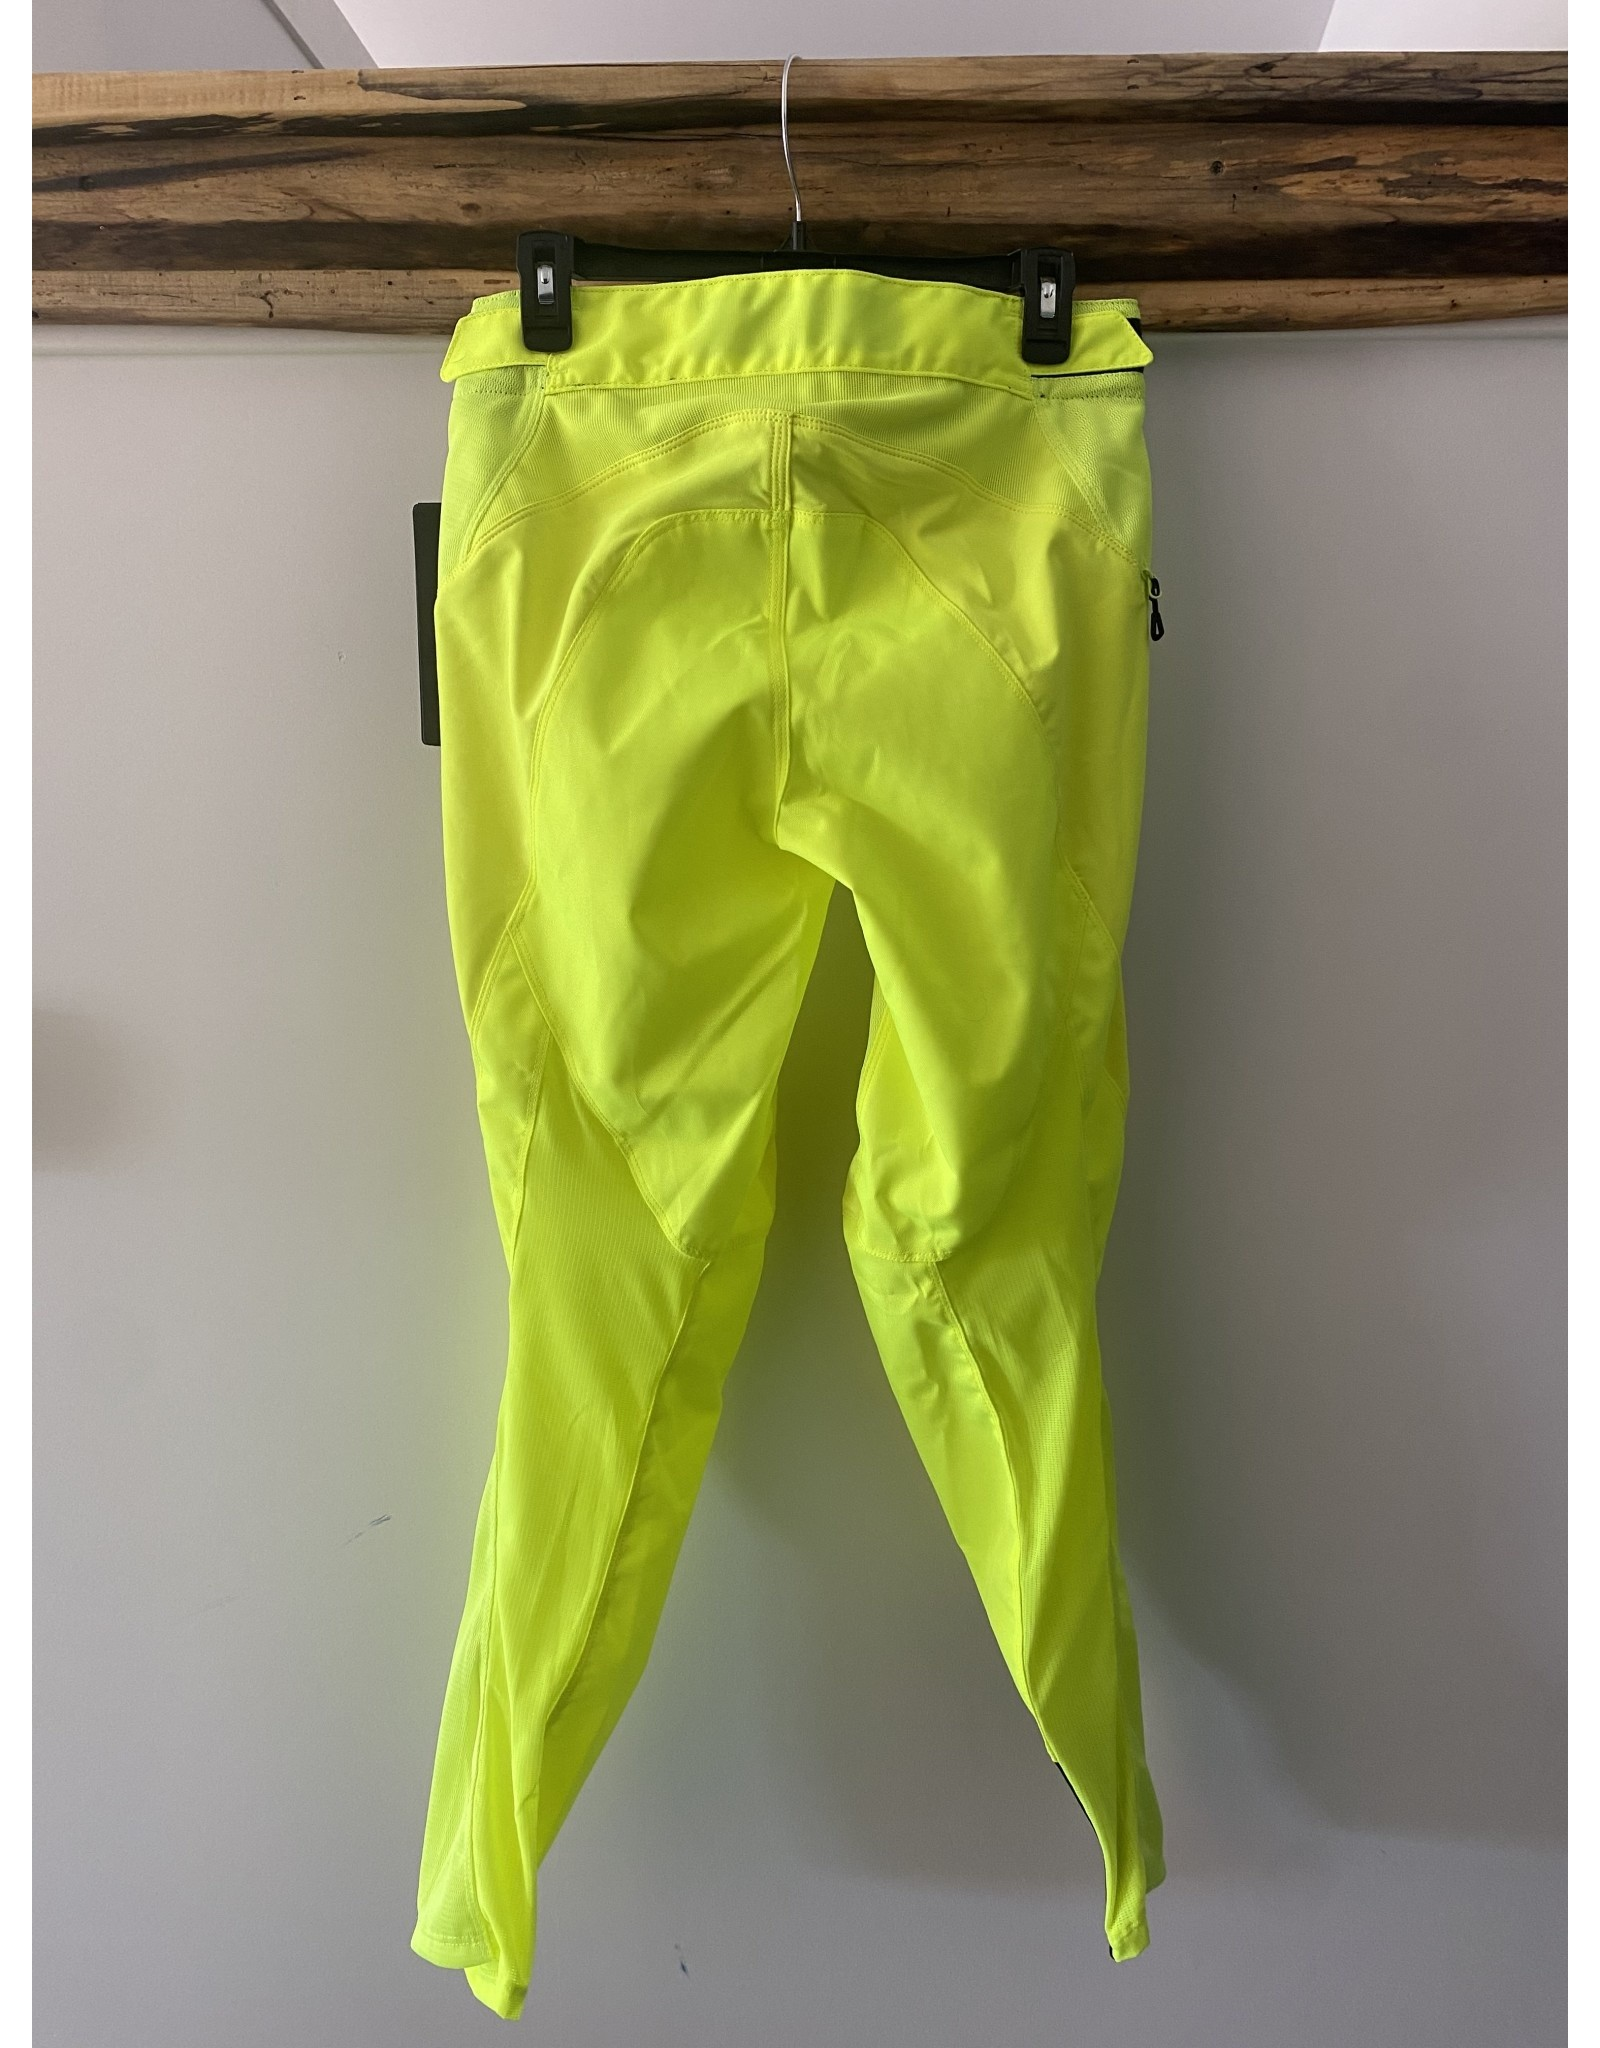 Troy Lee Designs Sprint Pant Flo Yellow Size 30